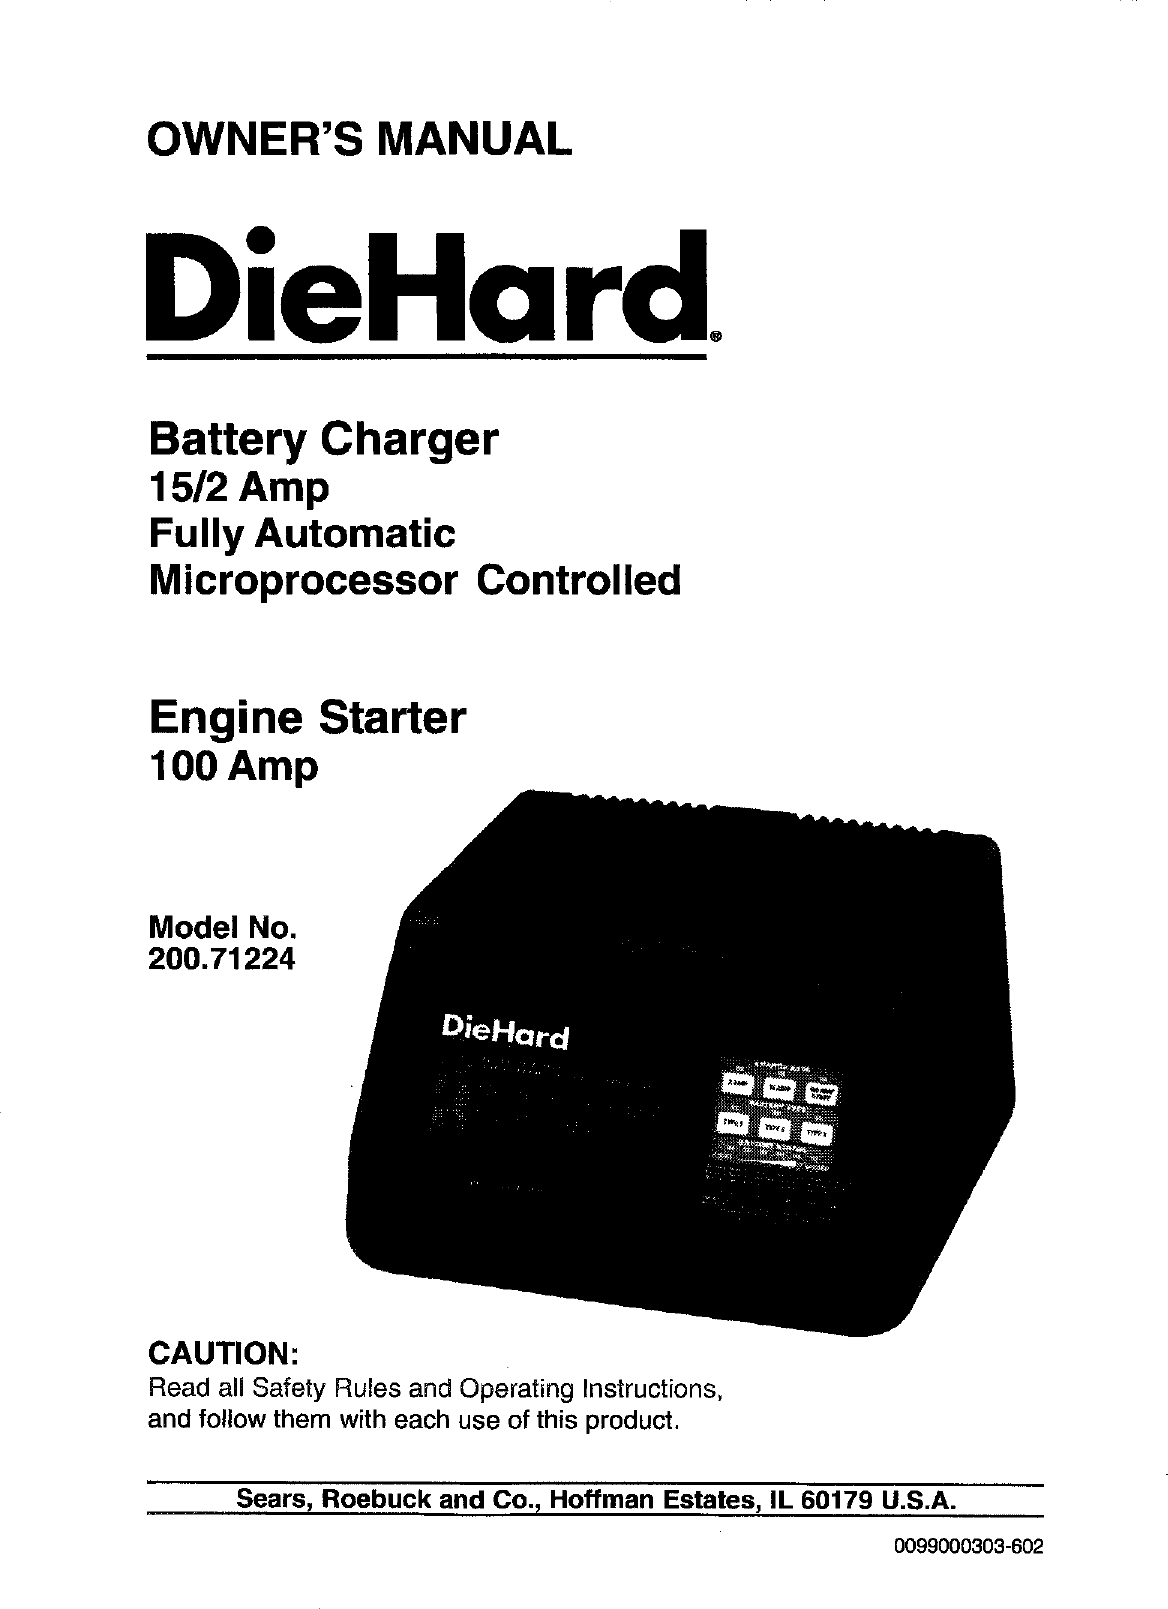 Diehard 20071224 User Manual BATTERY CHARGER Manuals And